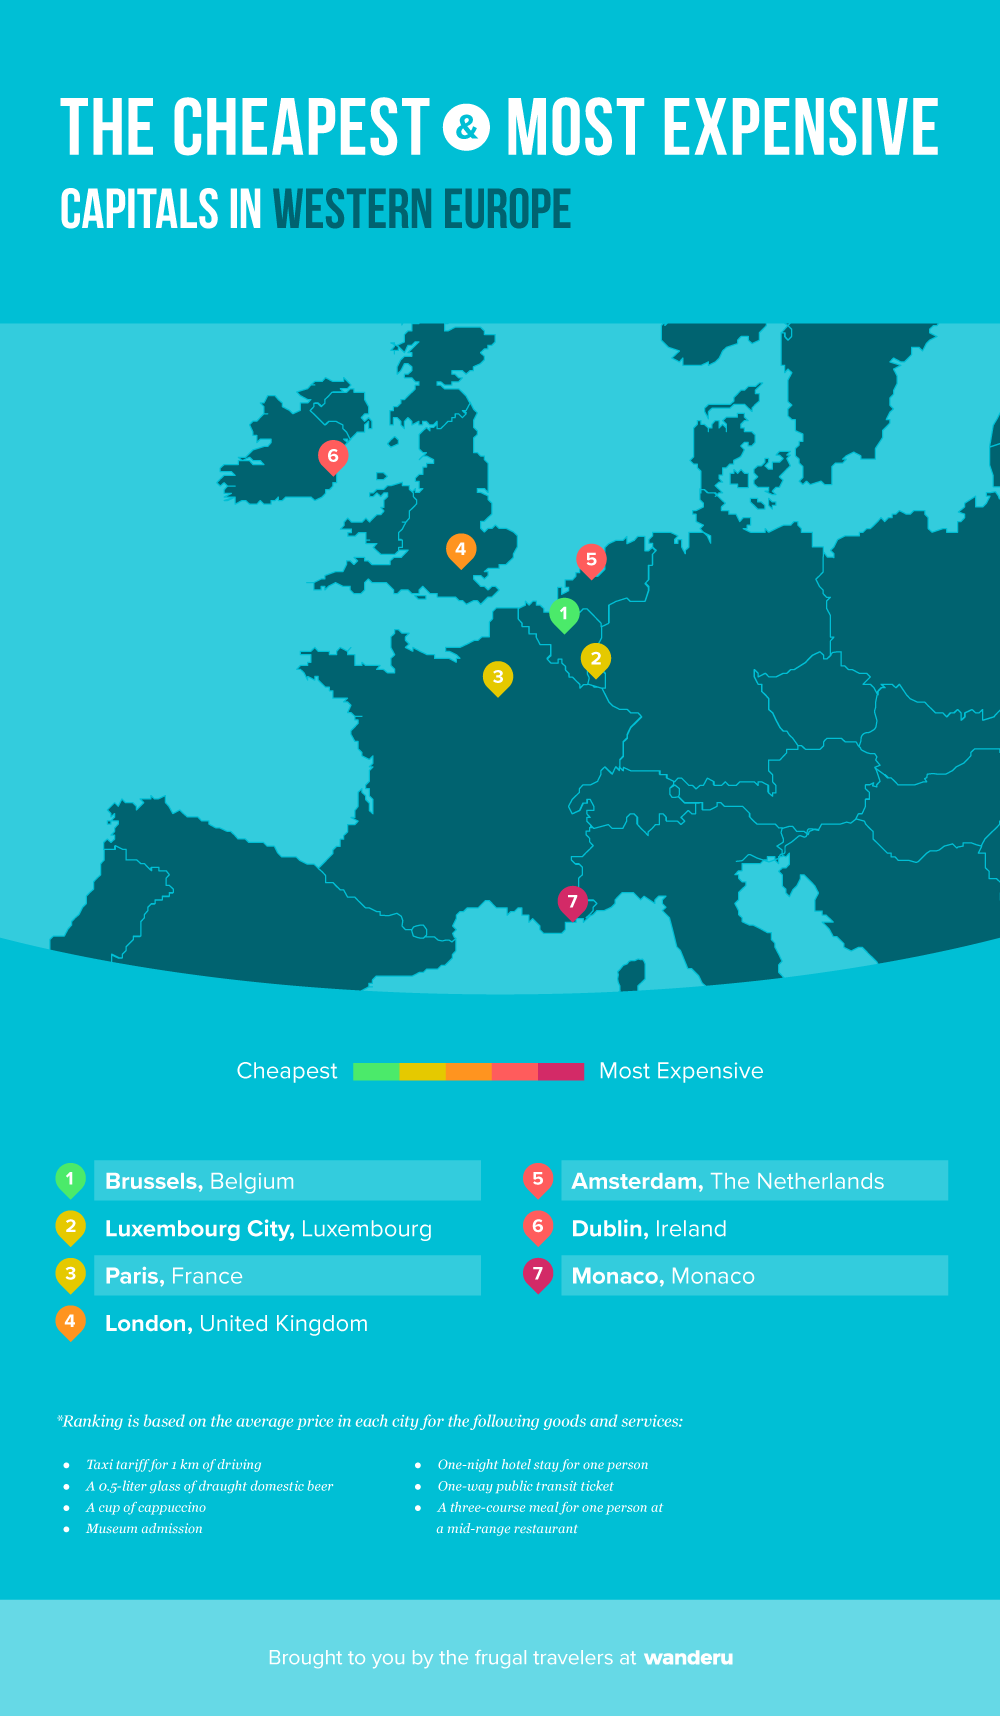 Cheapest & most expensive capitals in Western Europe.